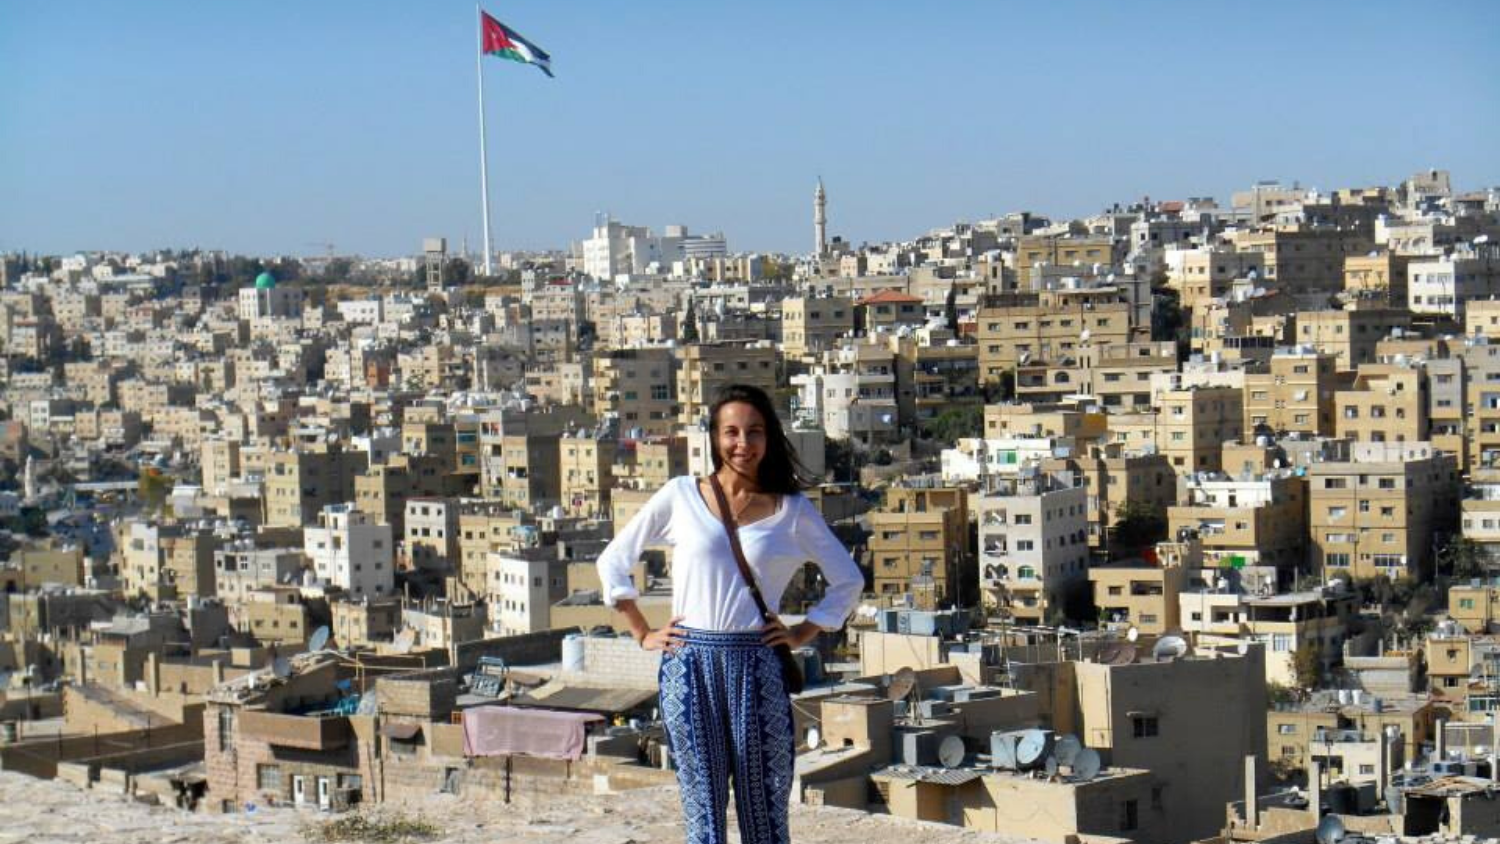 Tara standing in front of buildings abroad